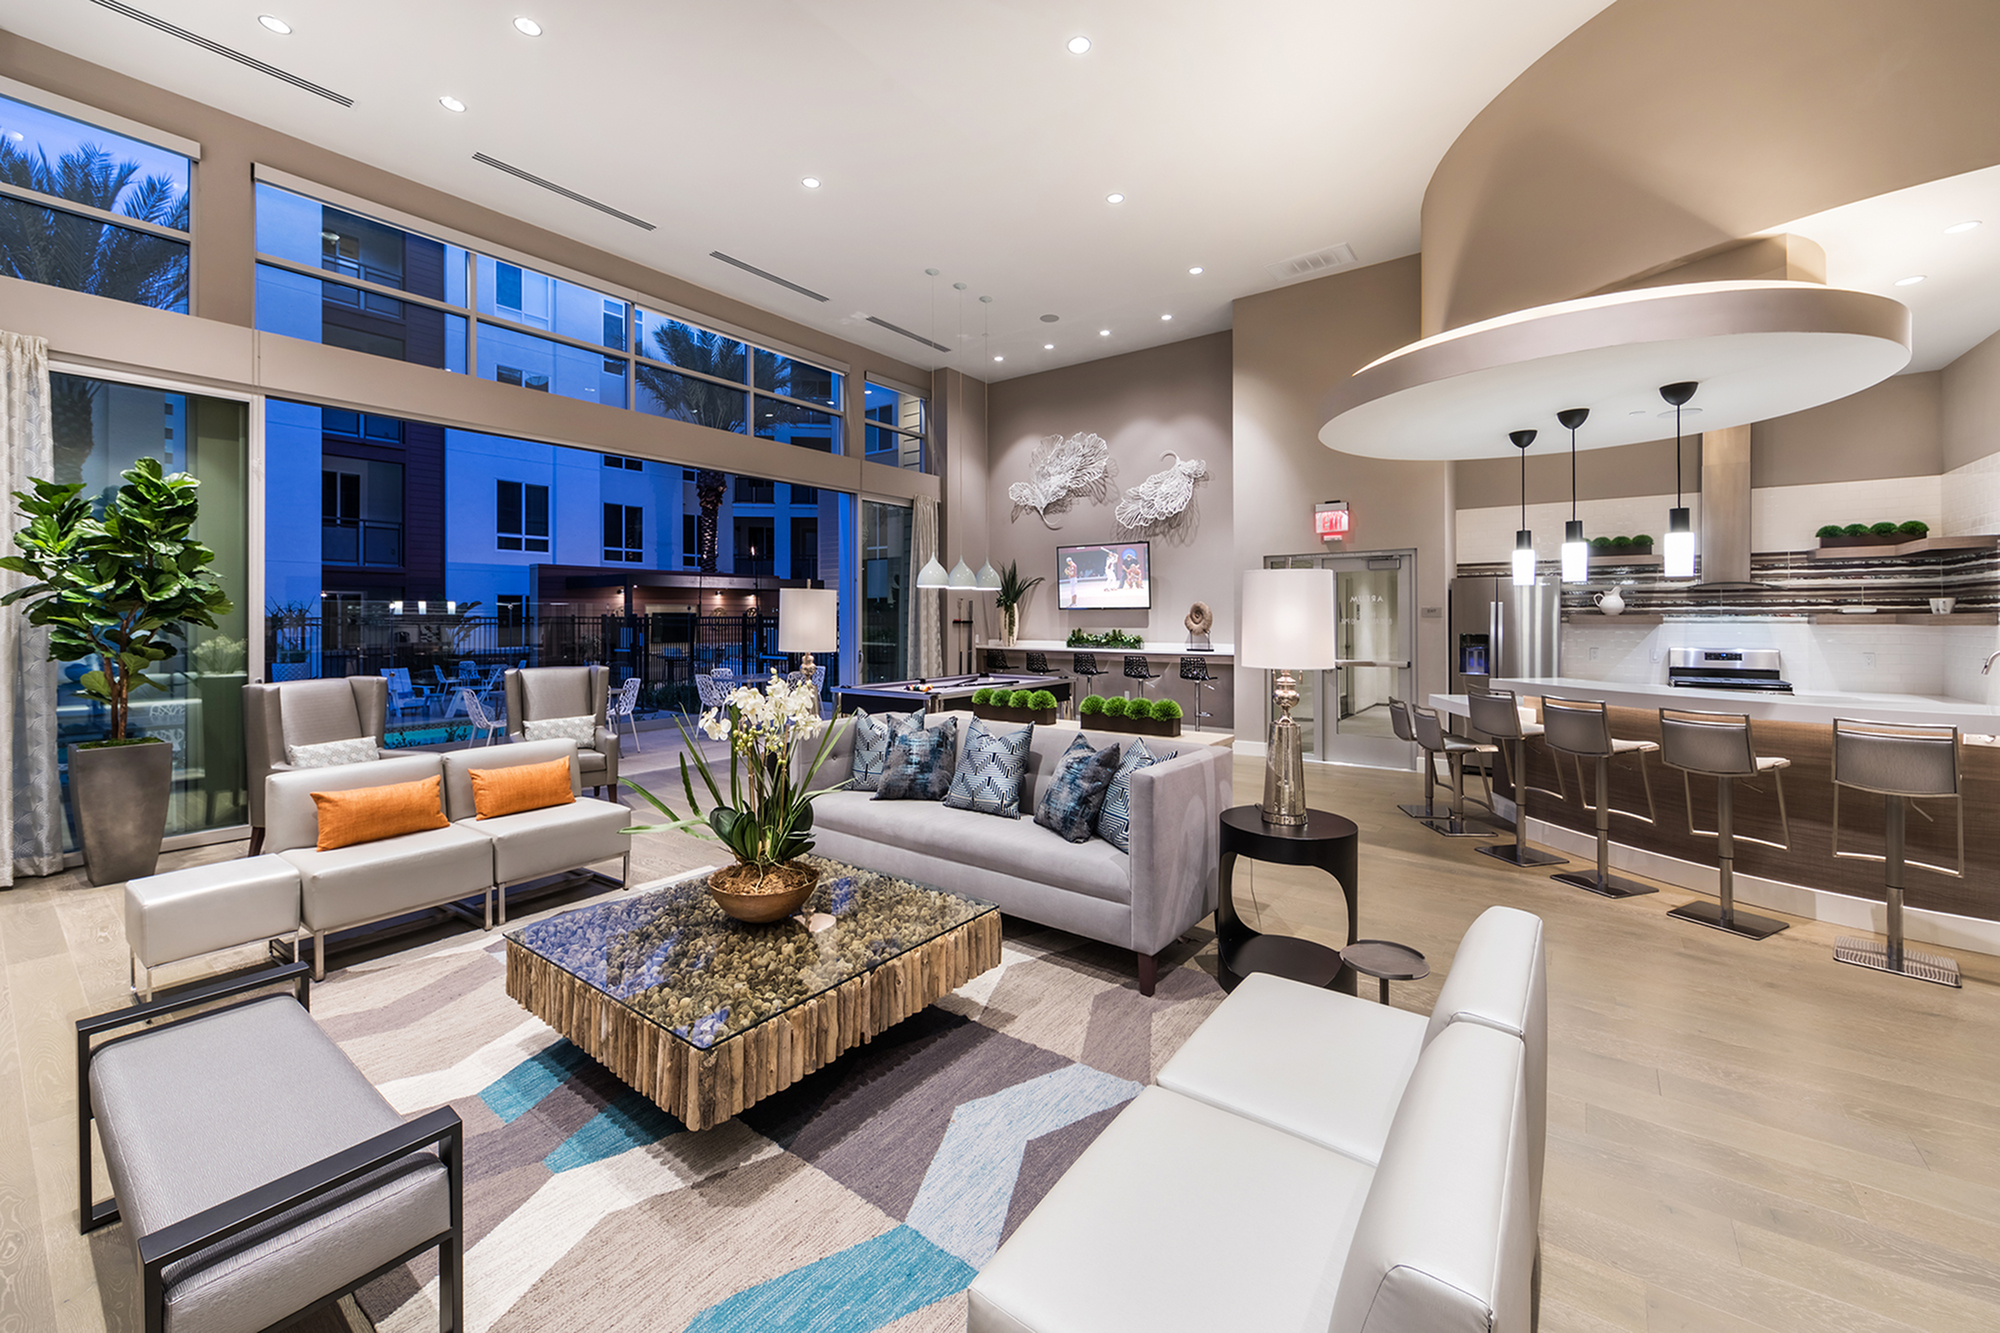 Social lounge seating area at Areum Apartments in Monrovia CA